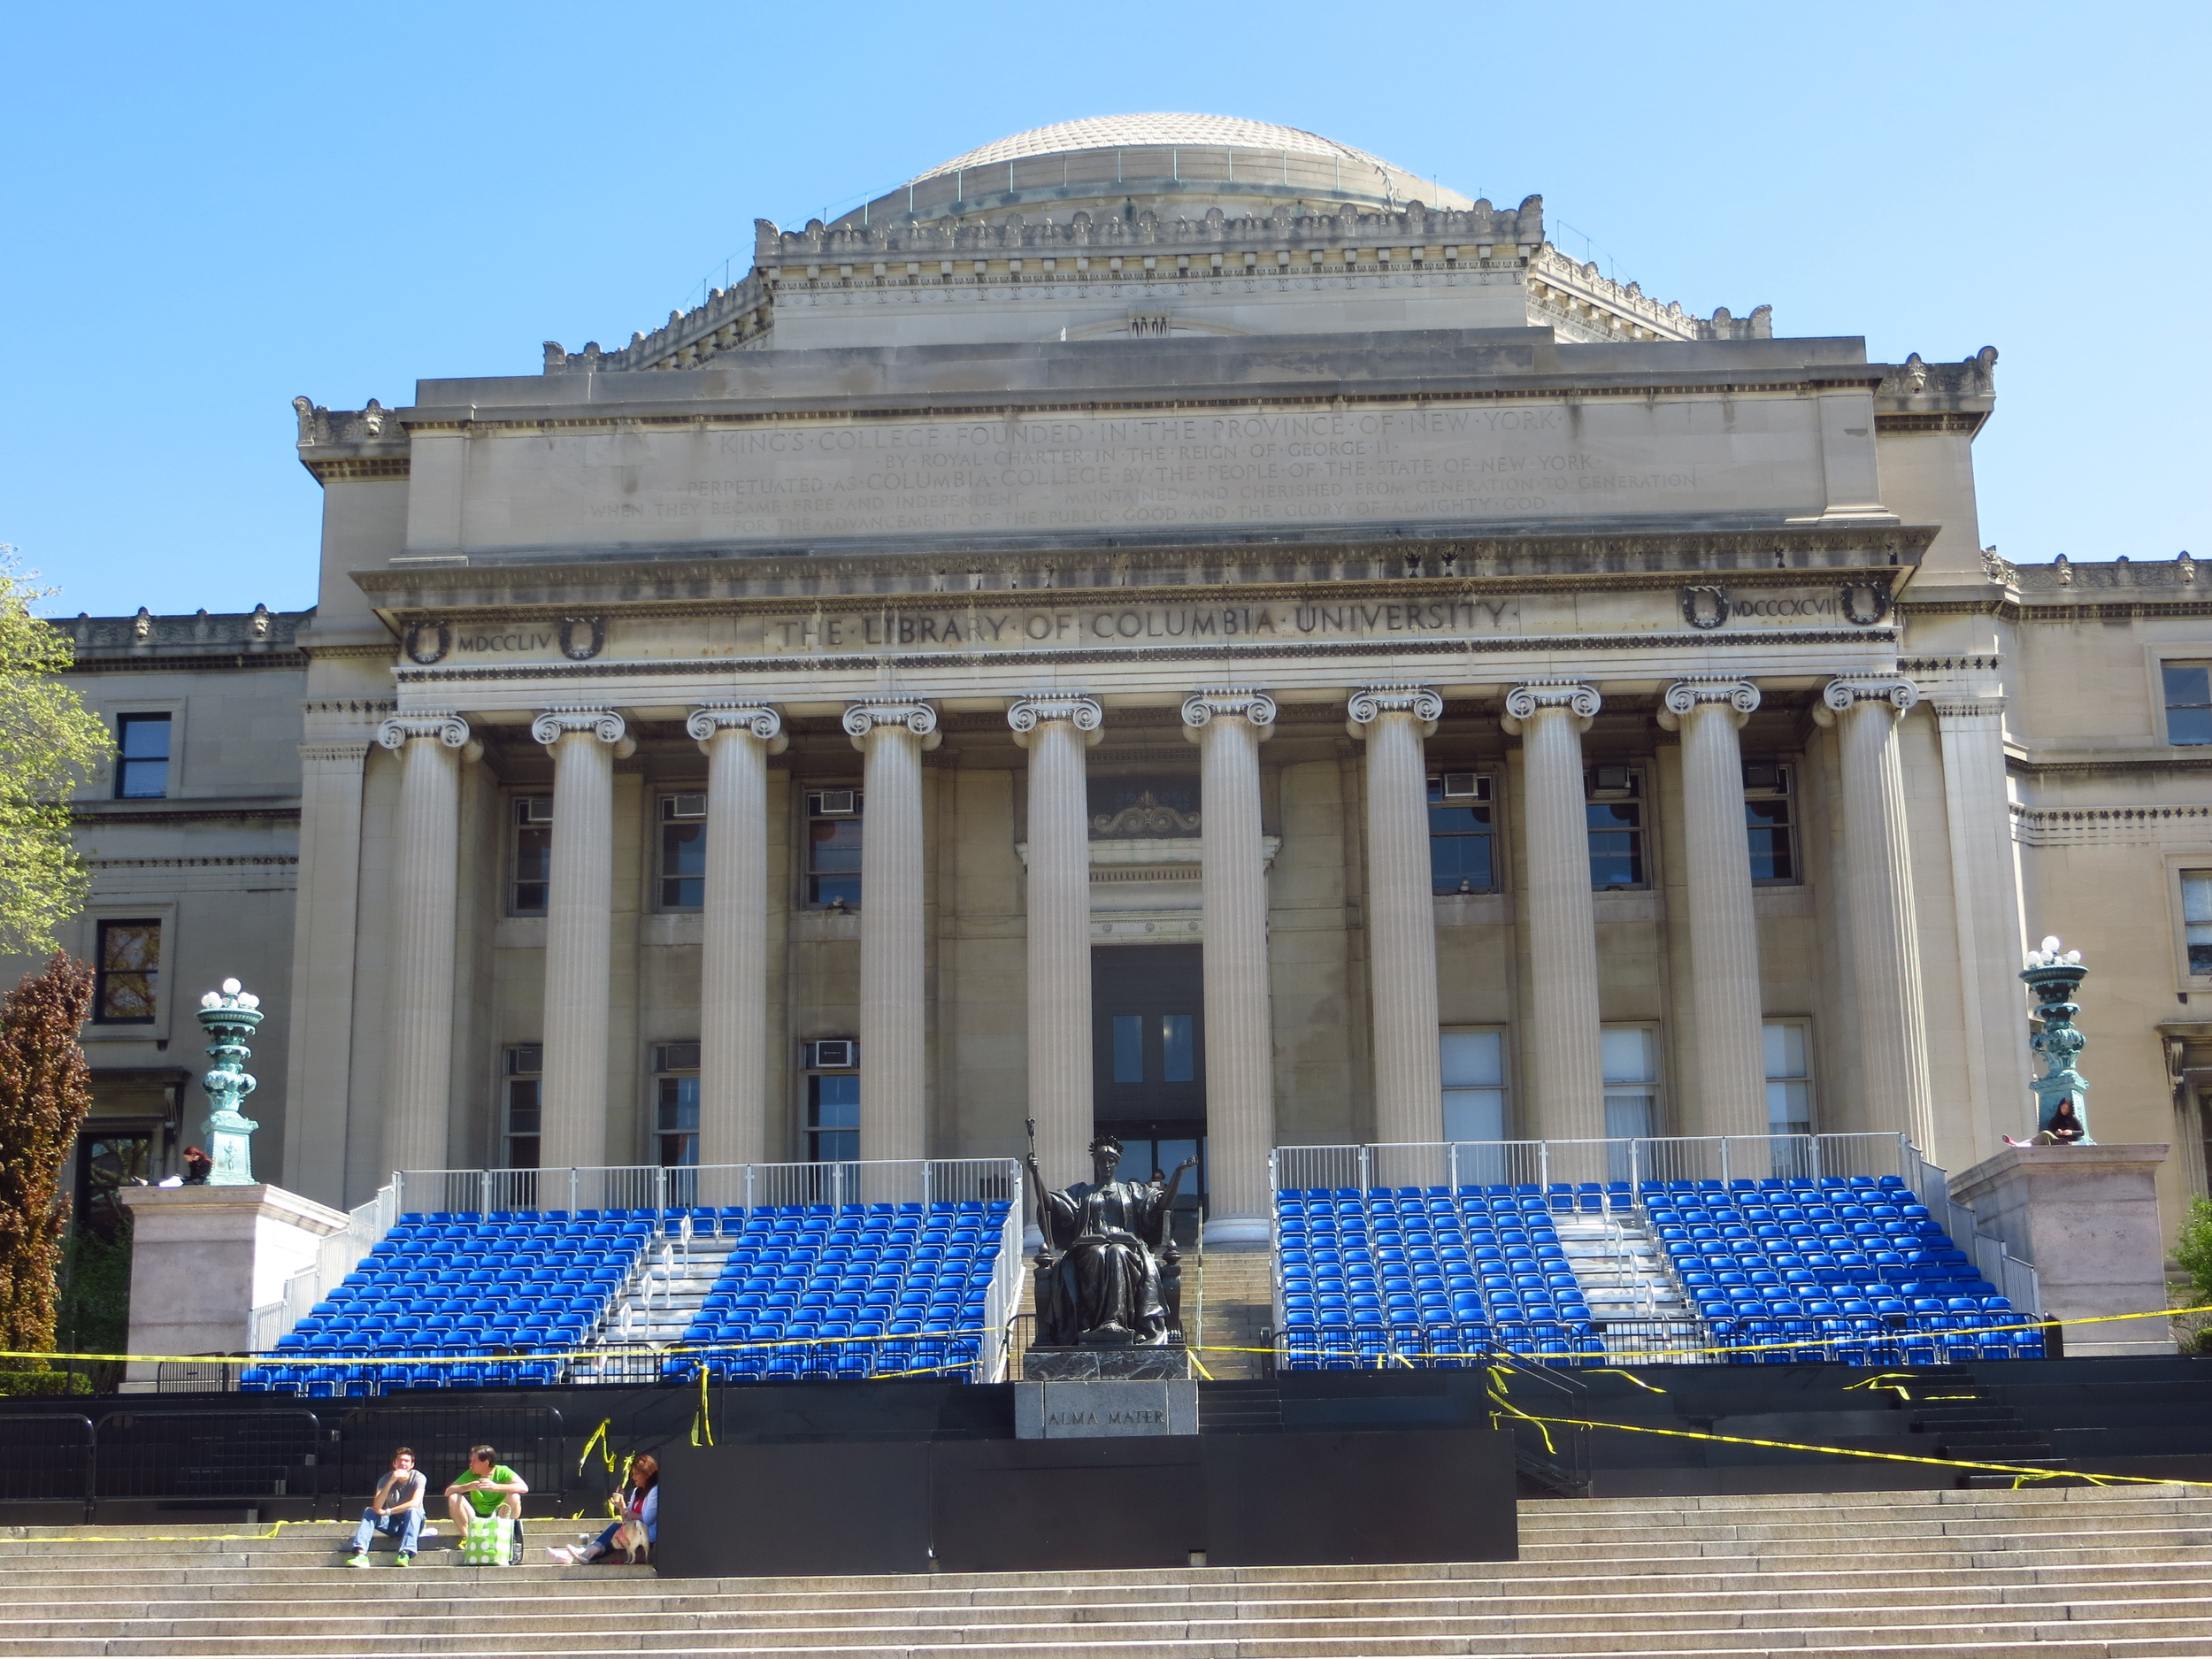 Columbia library